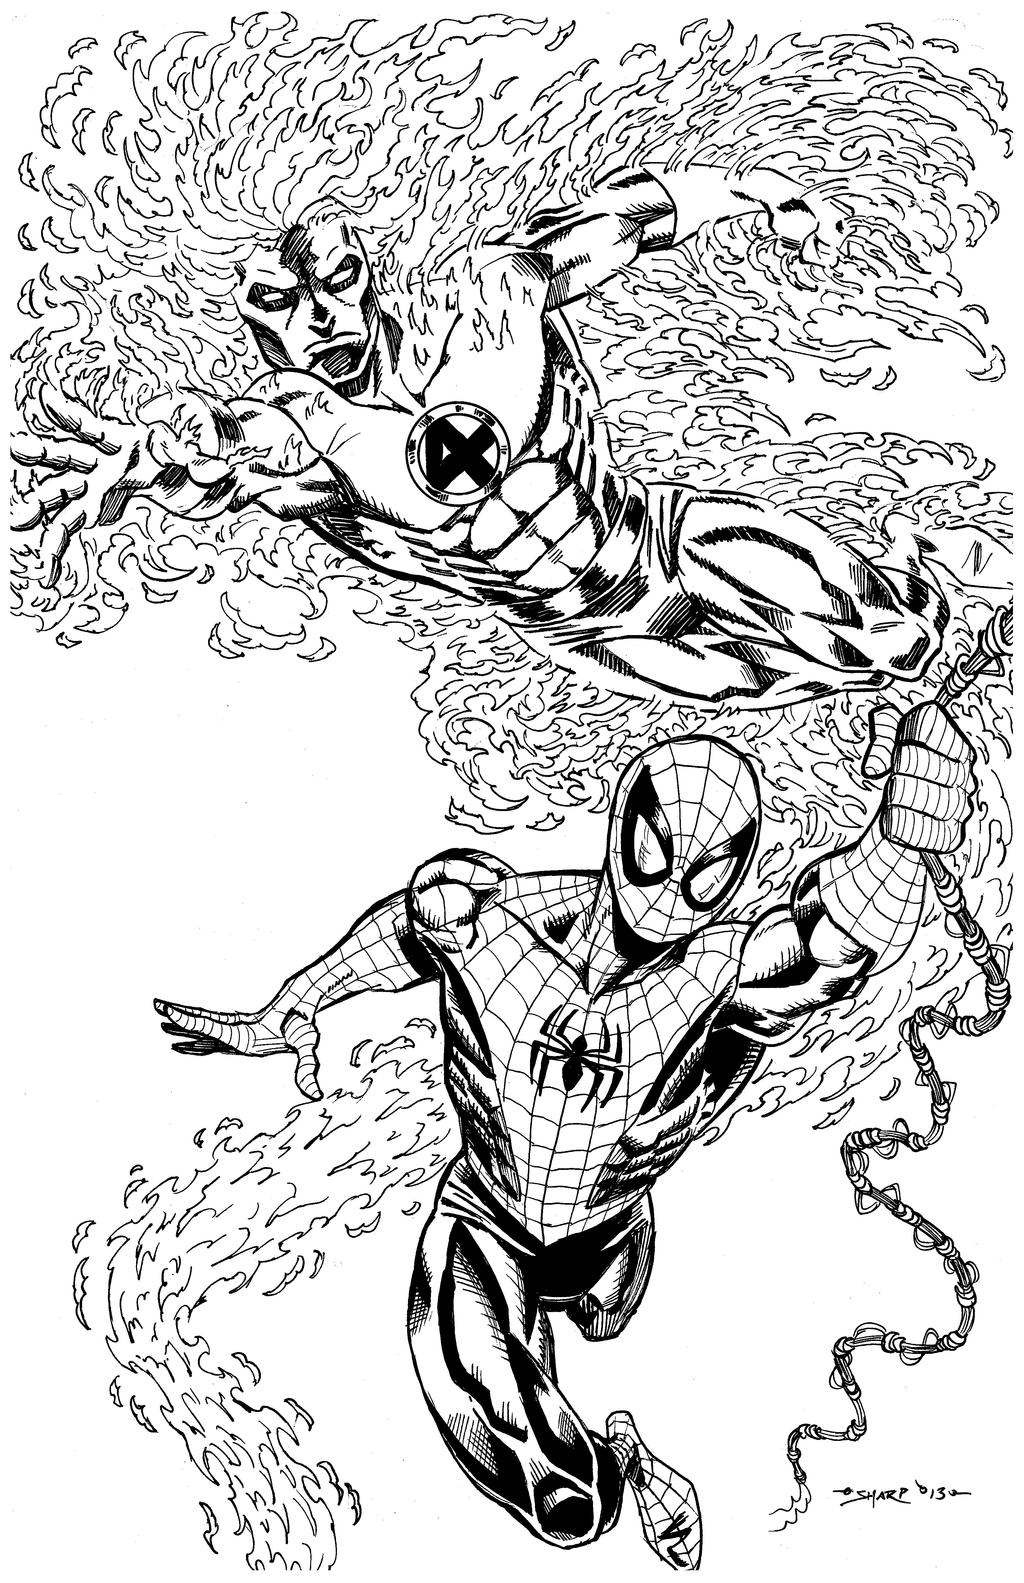 SPIDER-MAN/HUMAN TORCH COMMISSION by FanBoy67 on DeviantArt